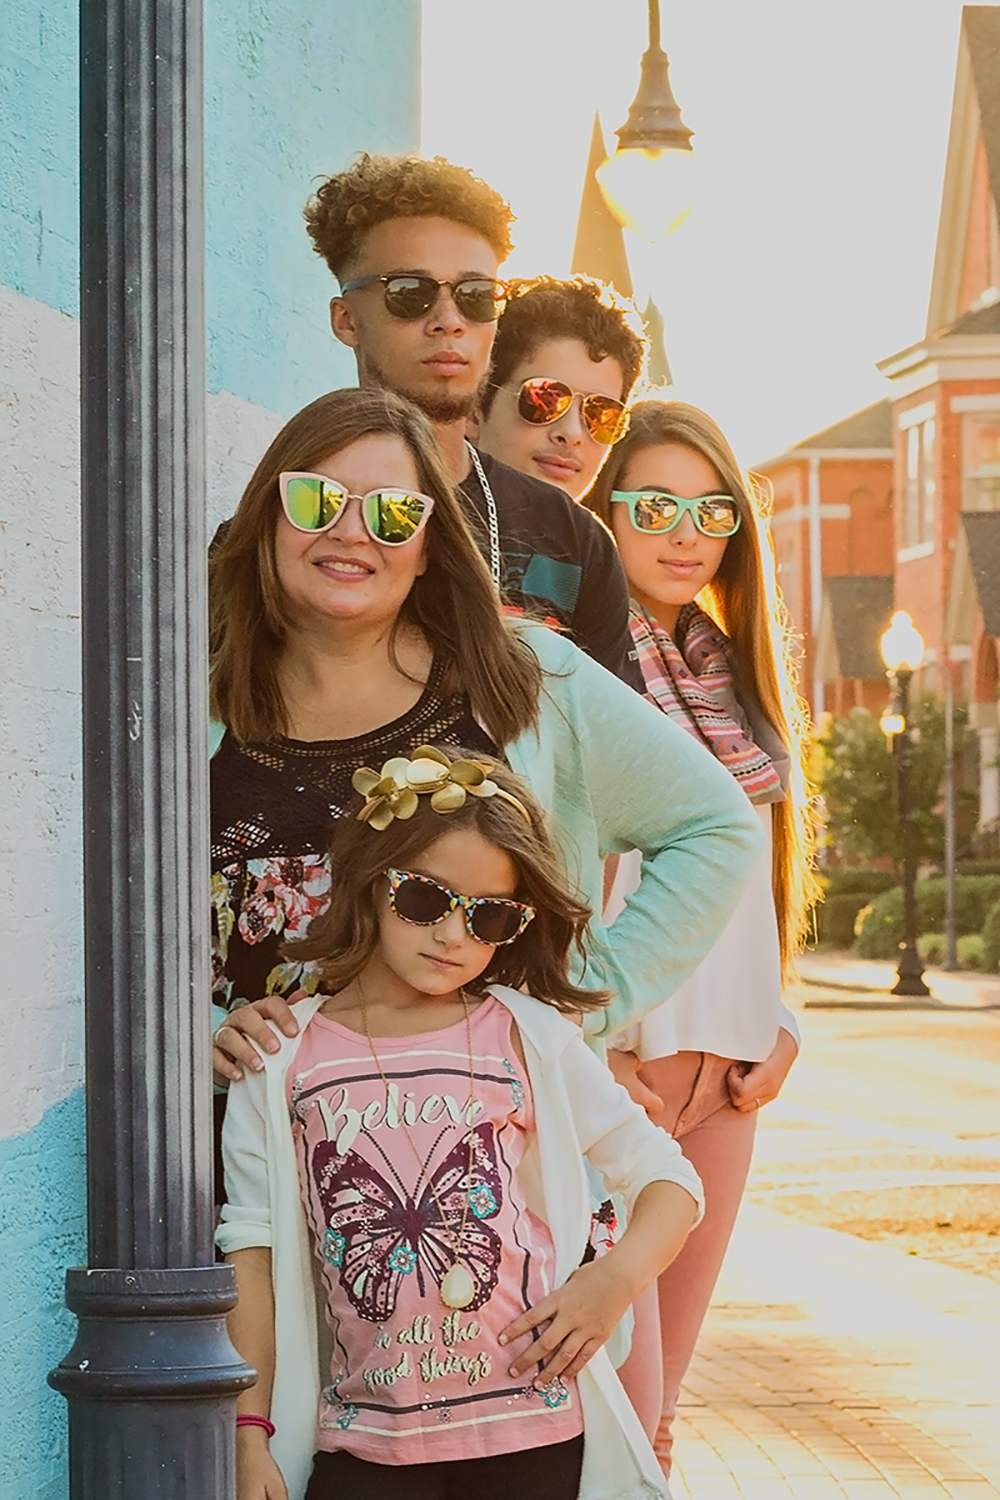 family in sunglasses web.jpg